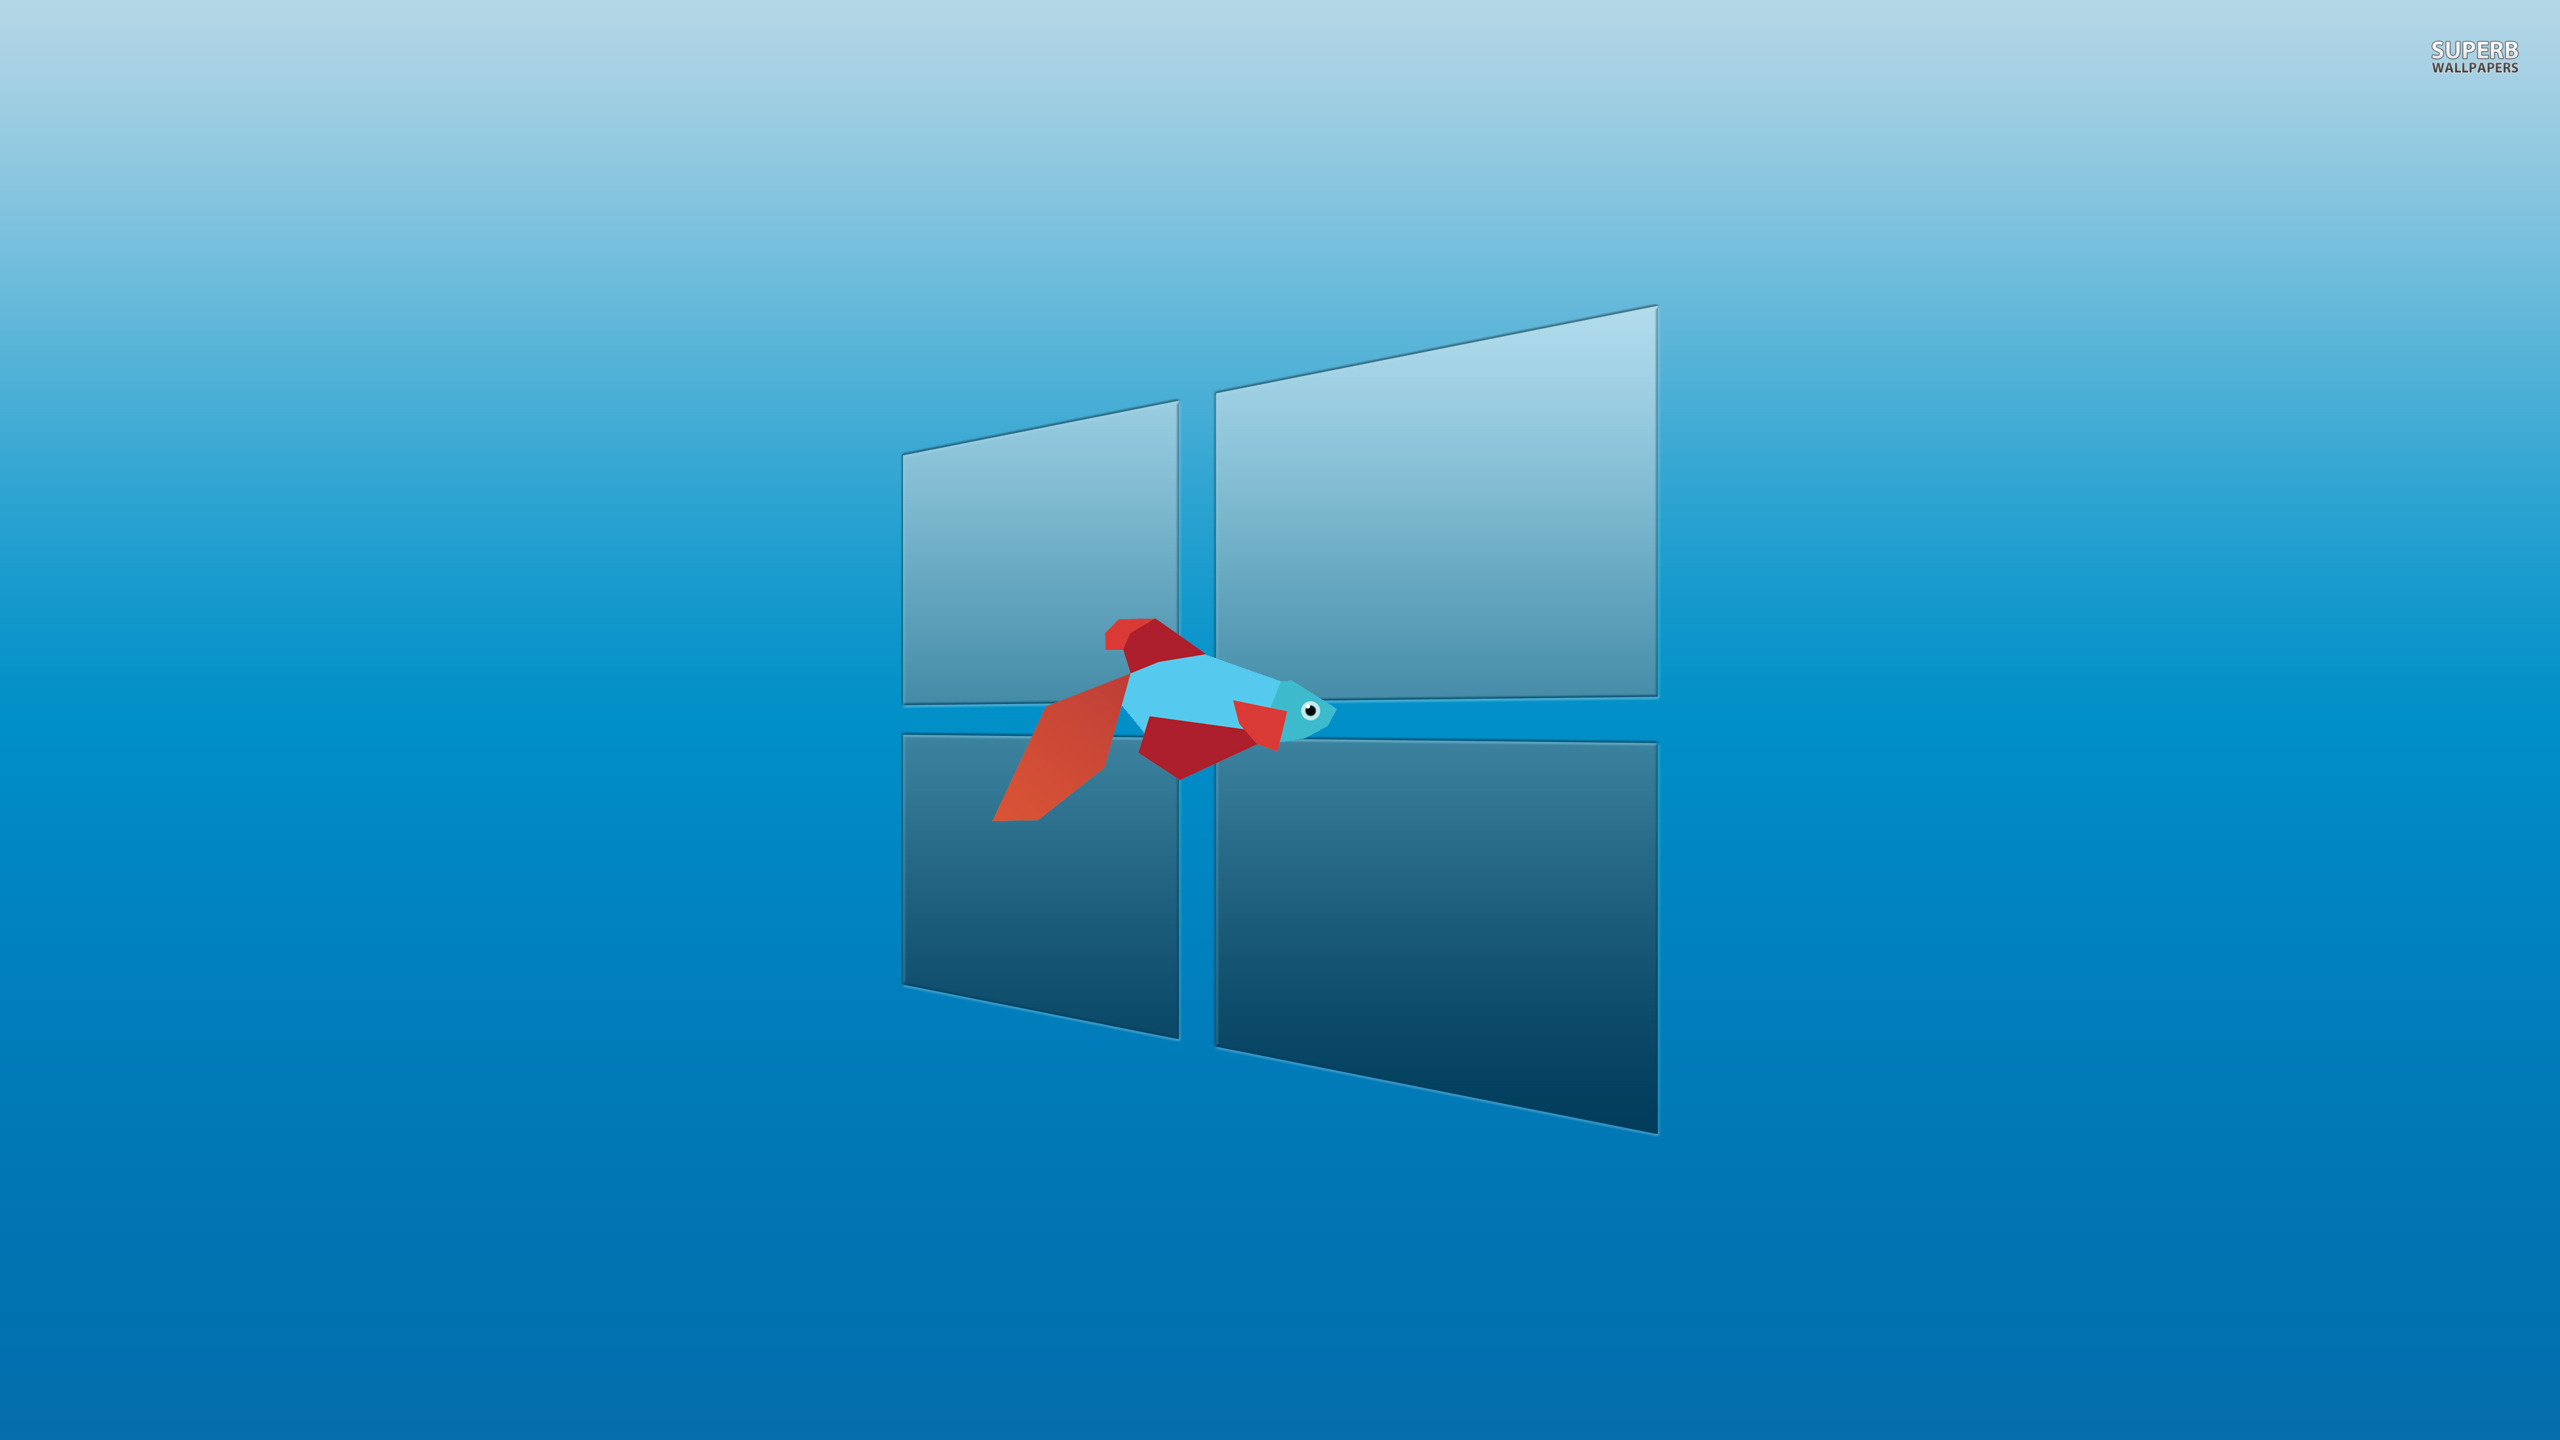 microsoft windows d wallpaper pixelstalk d windows hd wallpapers